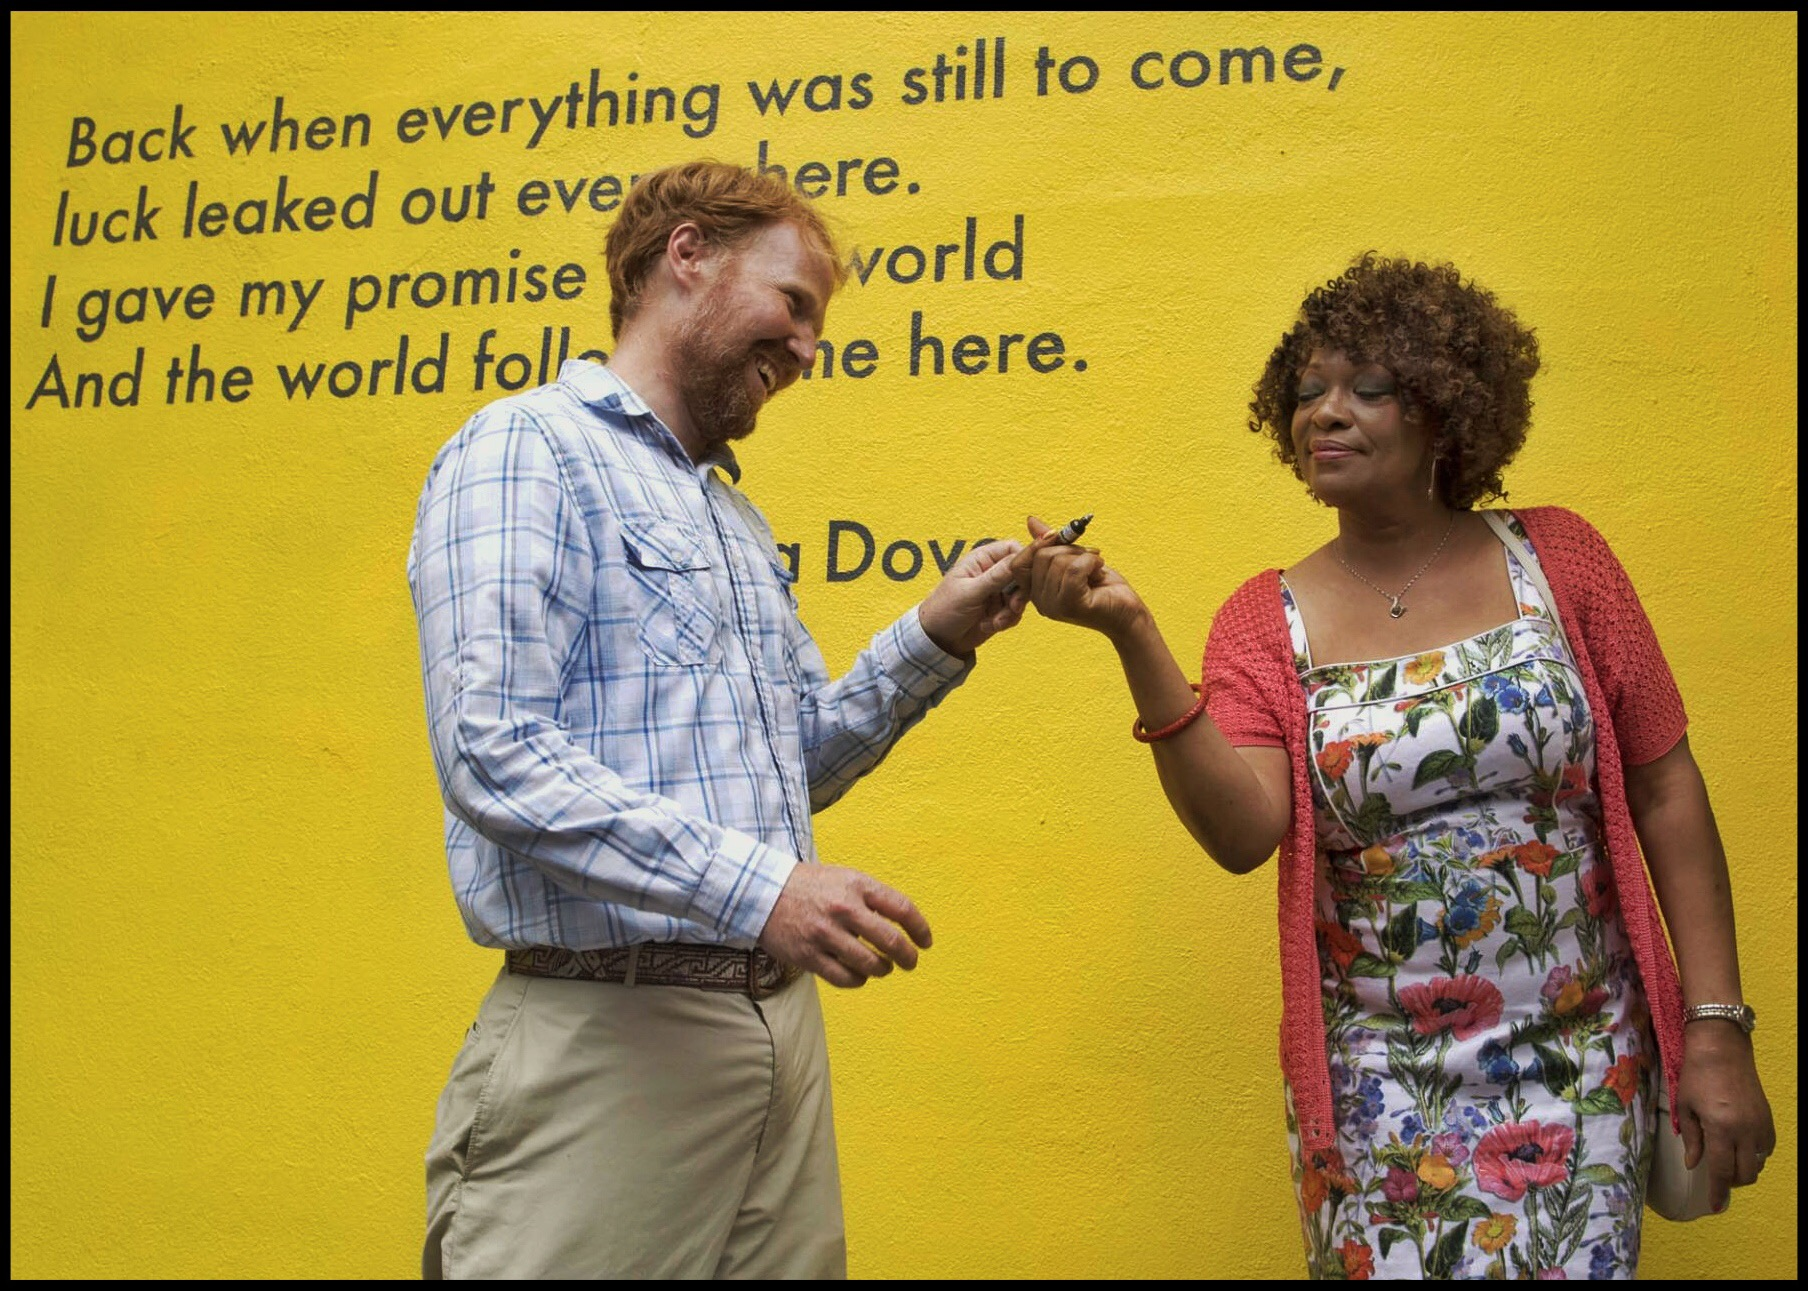 Rita Dove and David Guinn (Source: Virginia.edu)